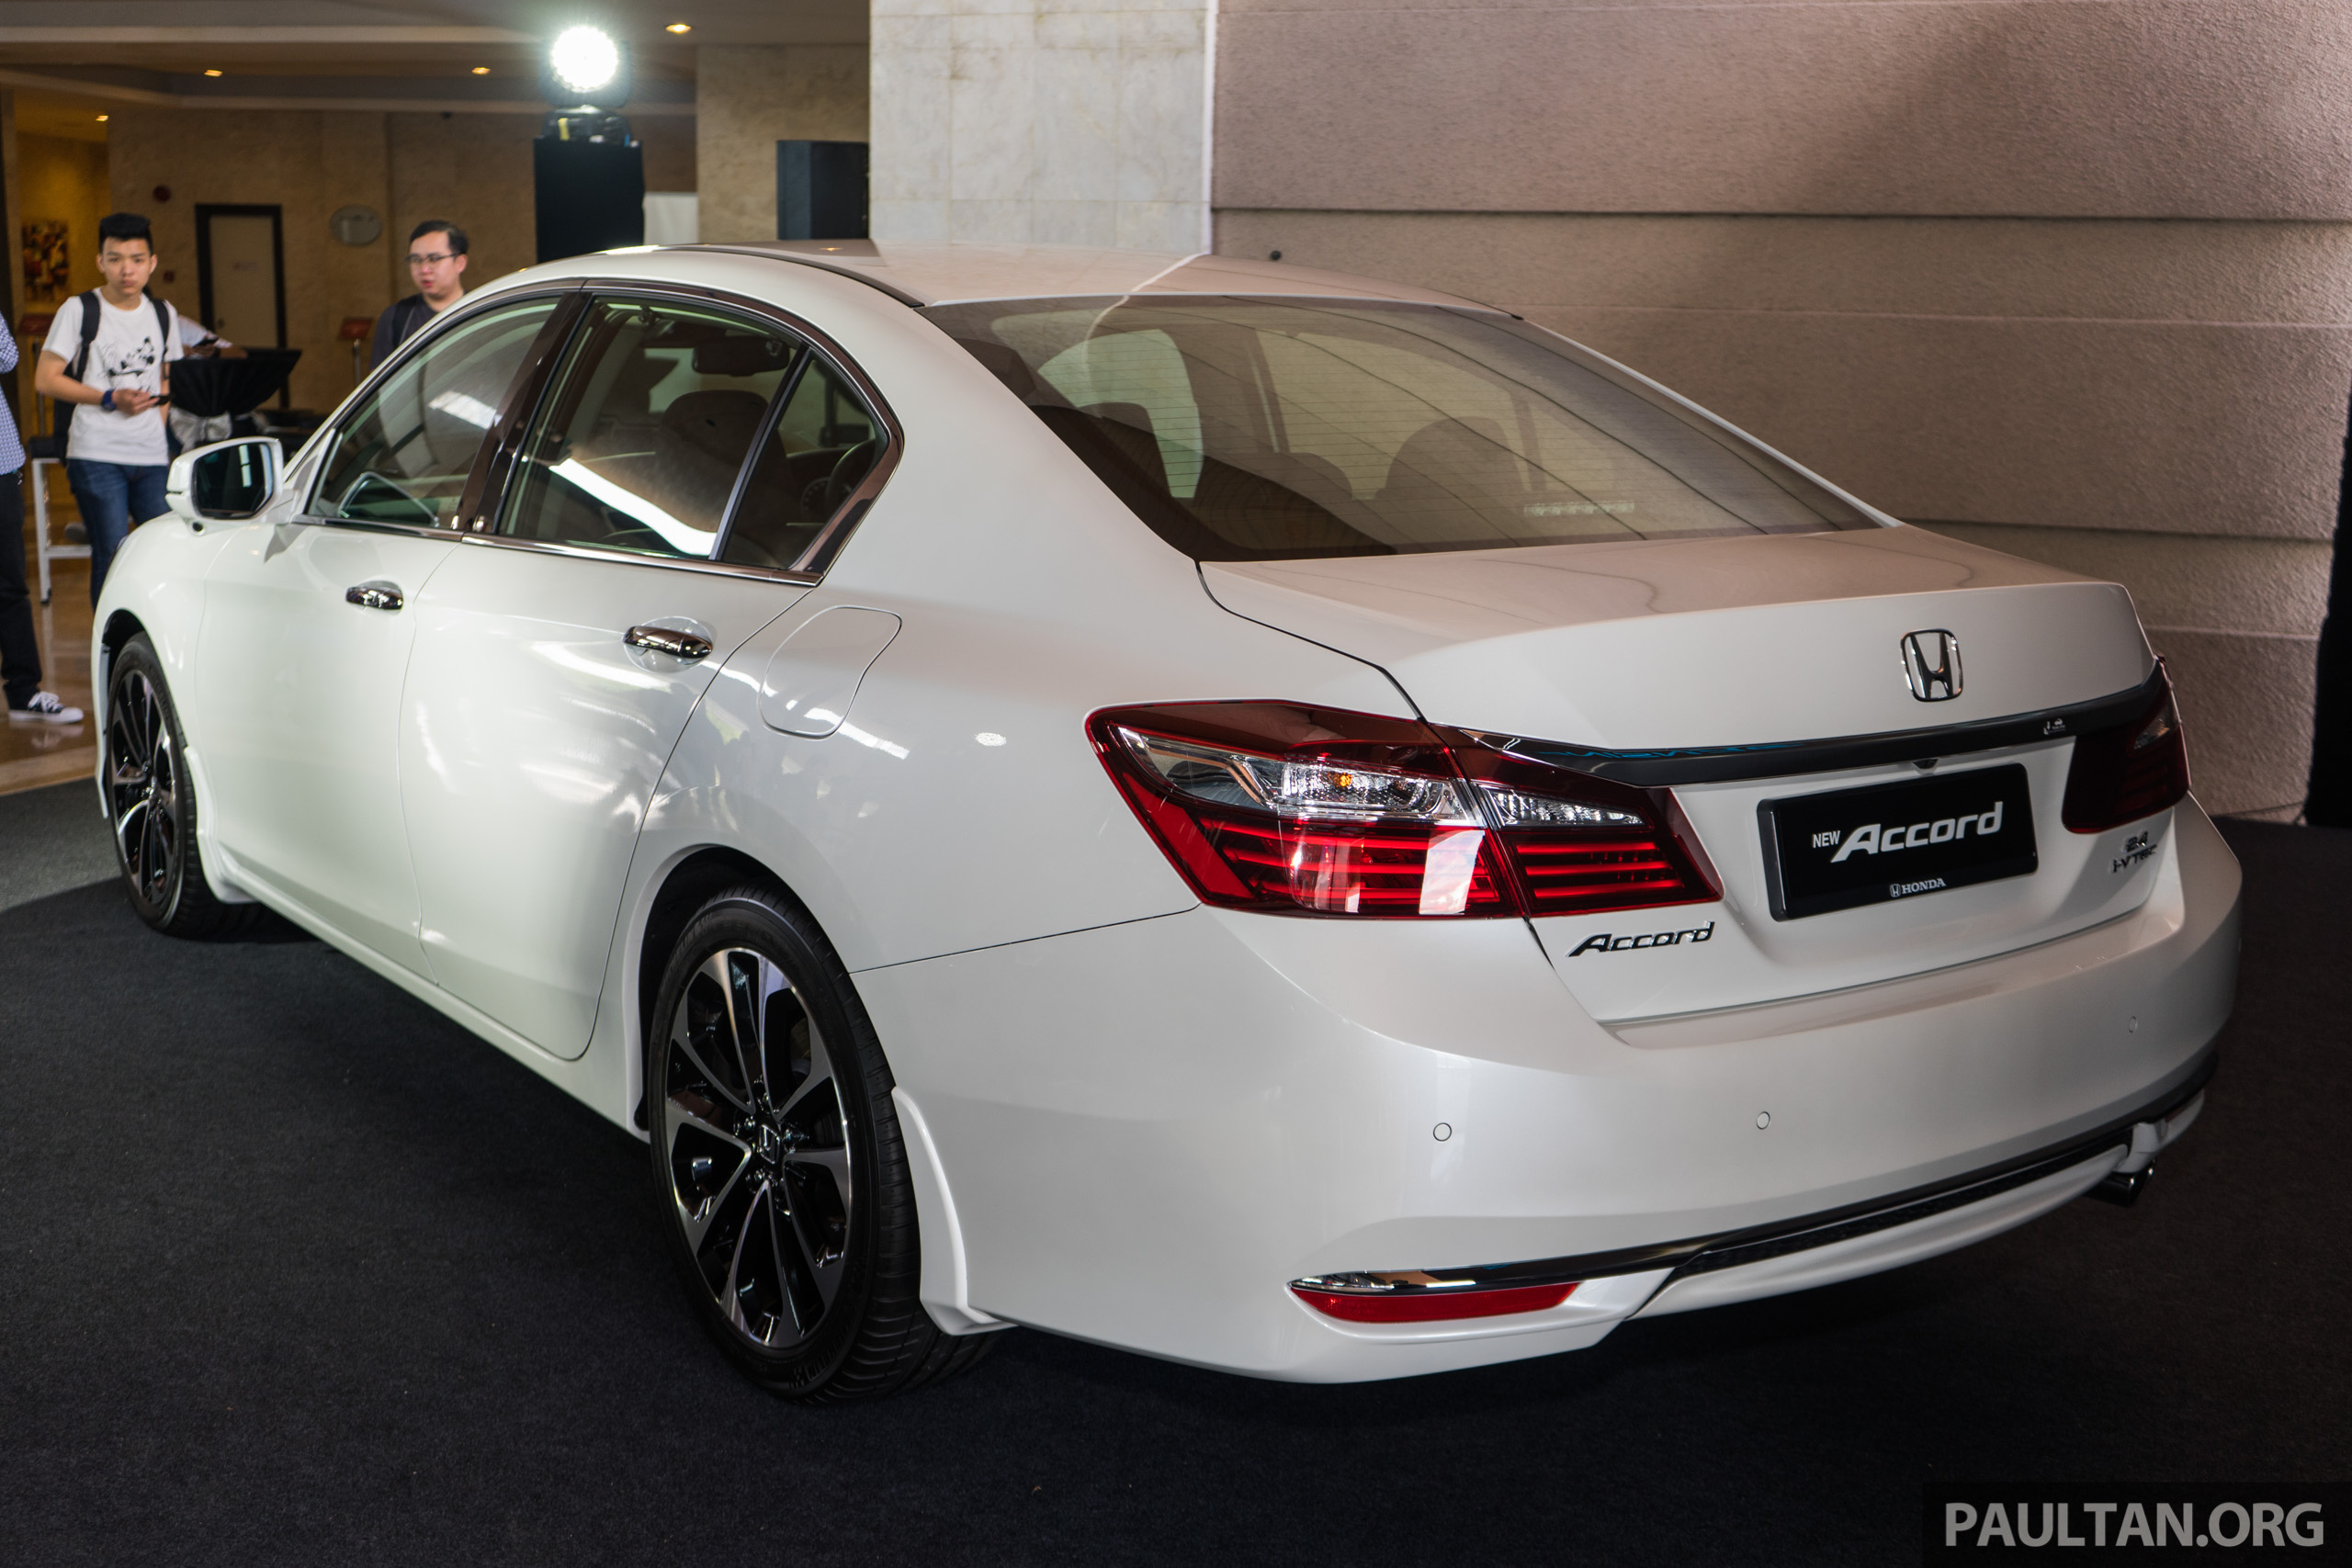 Honda Accord 2 4 Vti L Advance Now With Sensing Safety Package